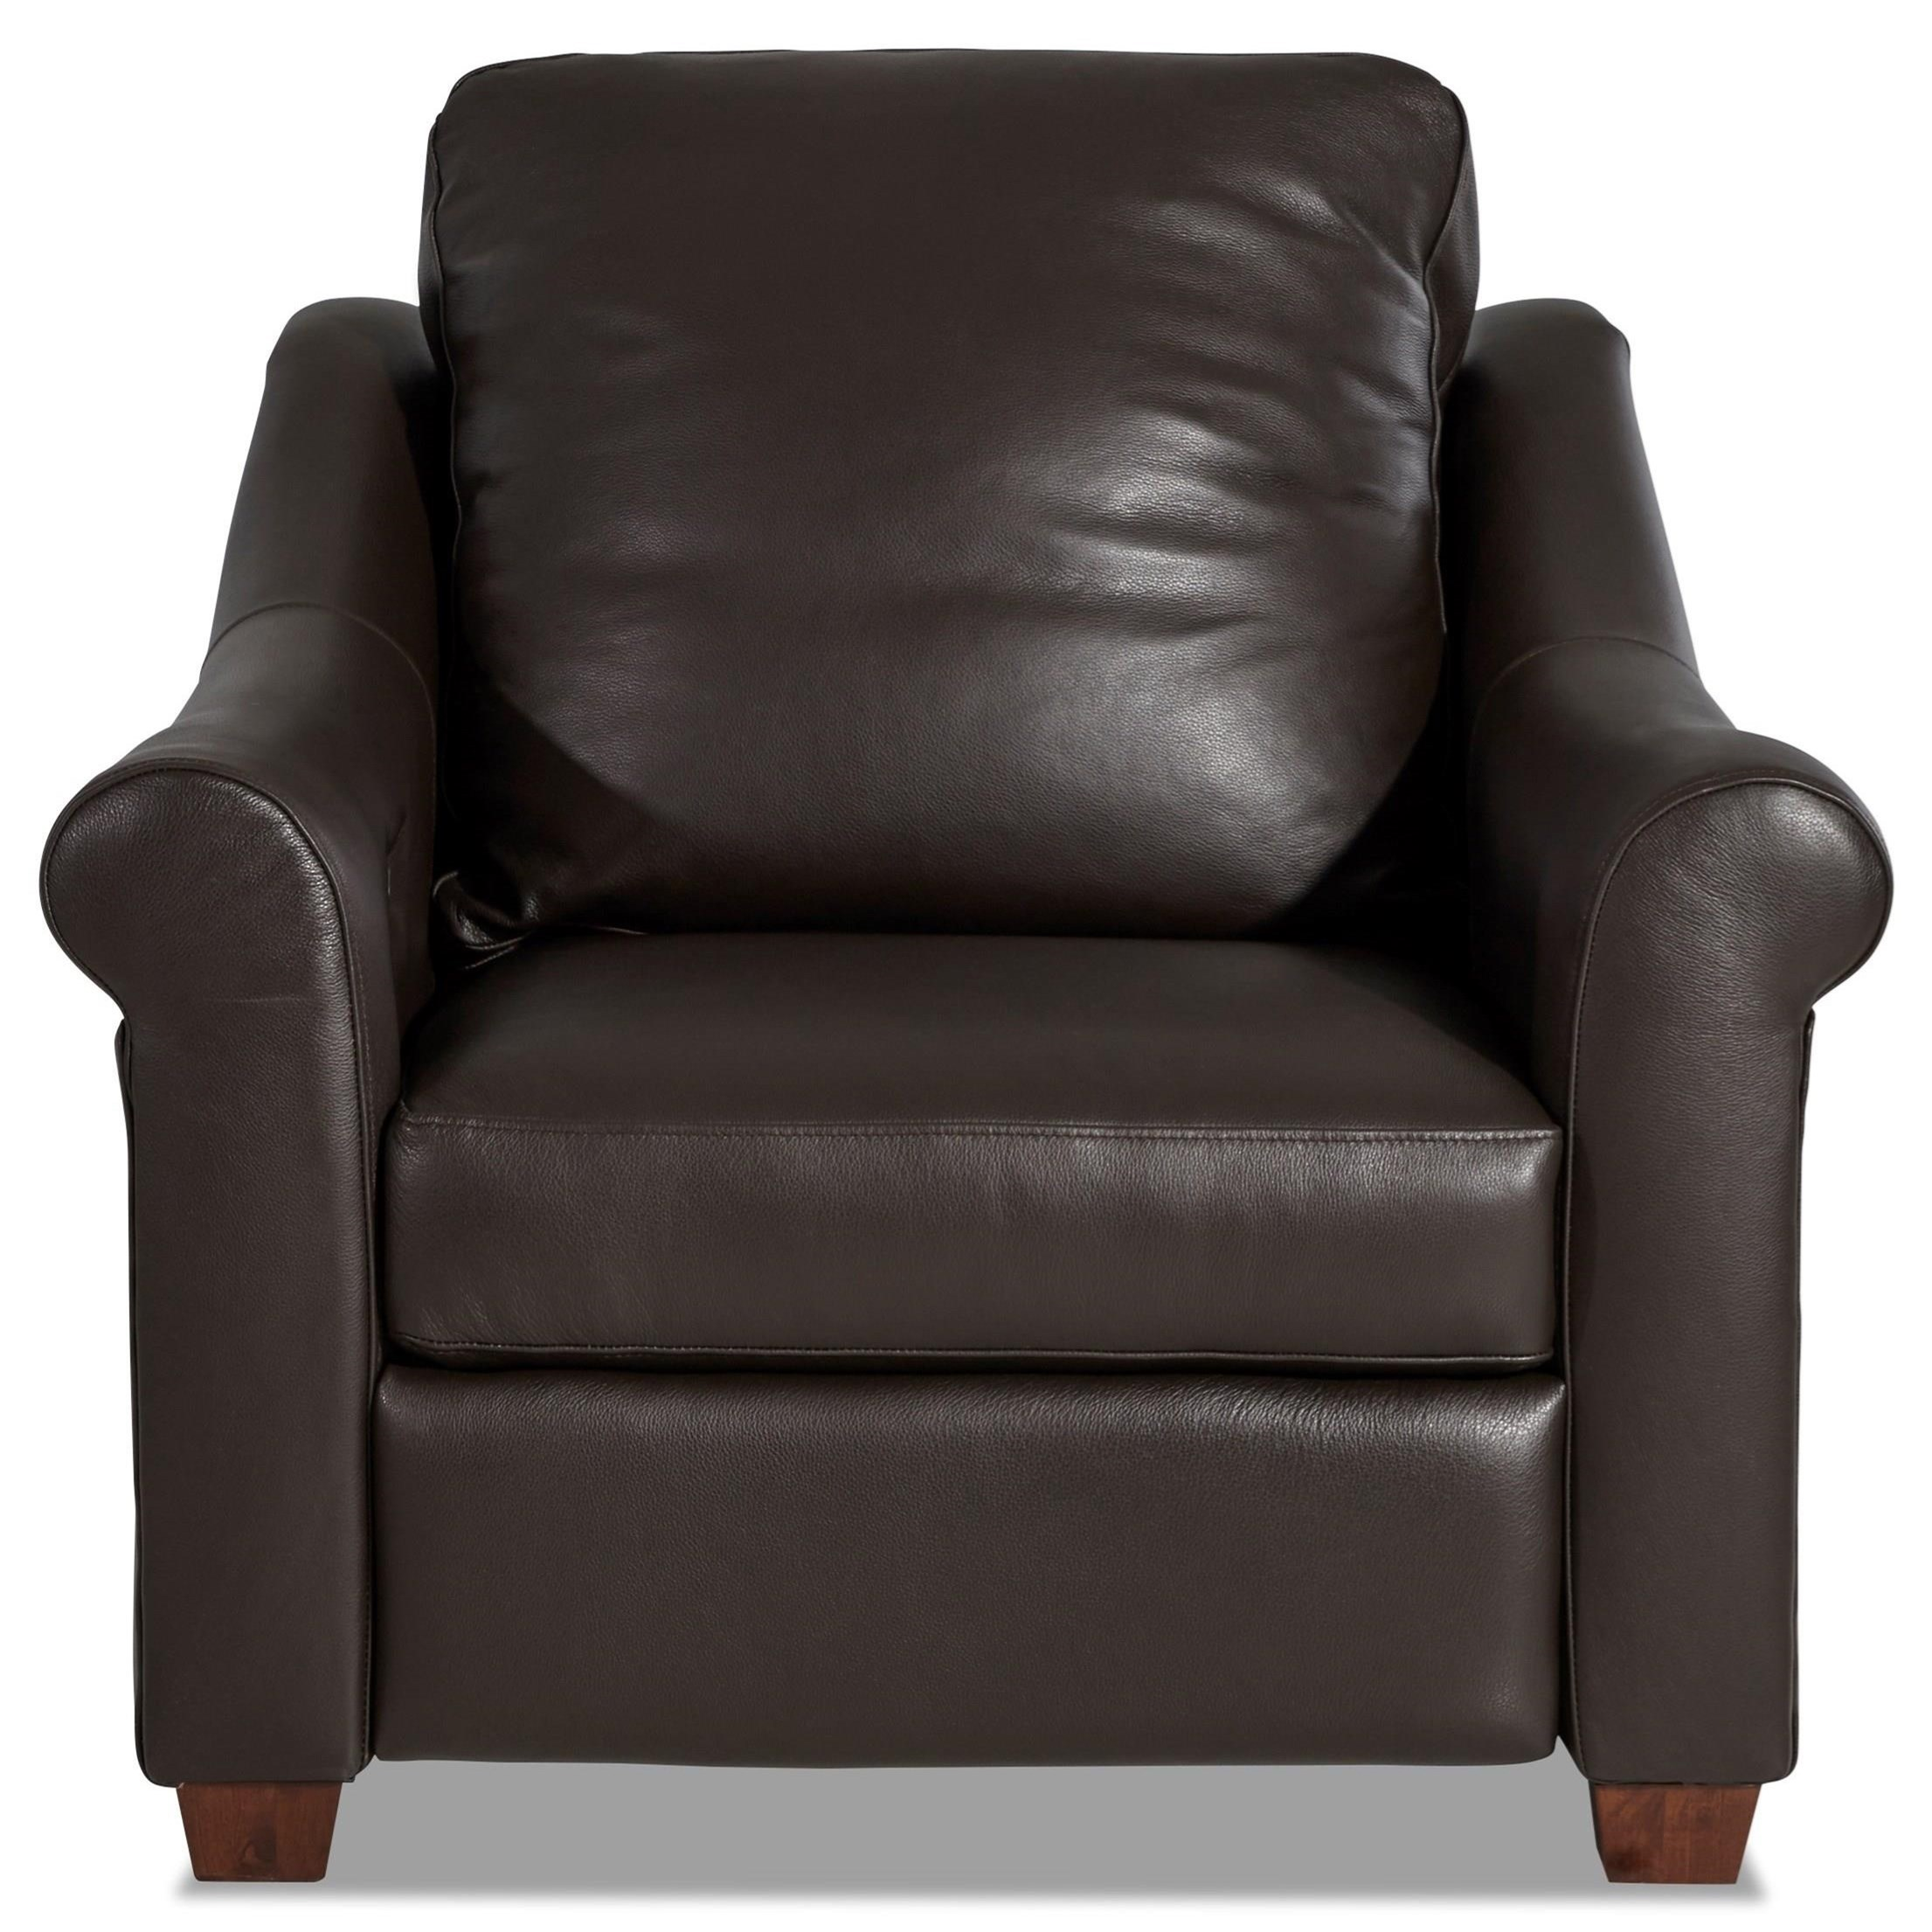 Whitfield Power Recliner by Klaussner at Pilgrim Furniture City